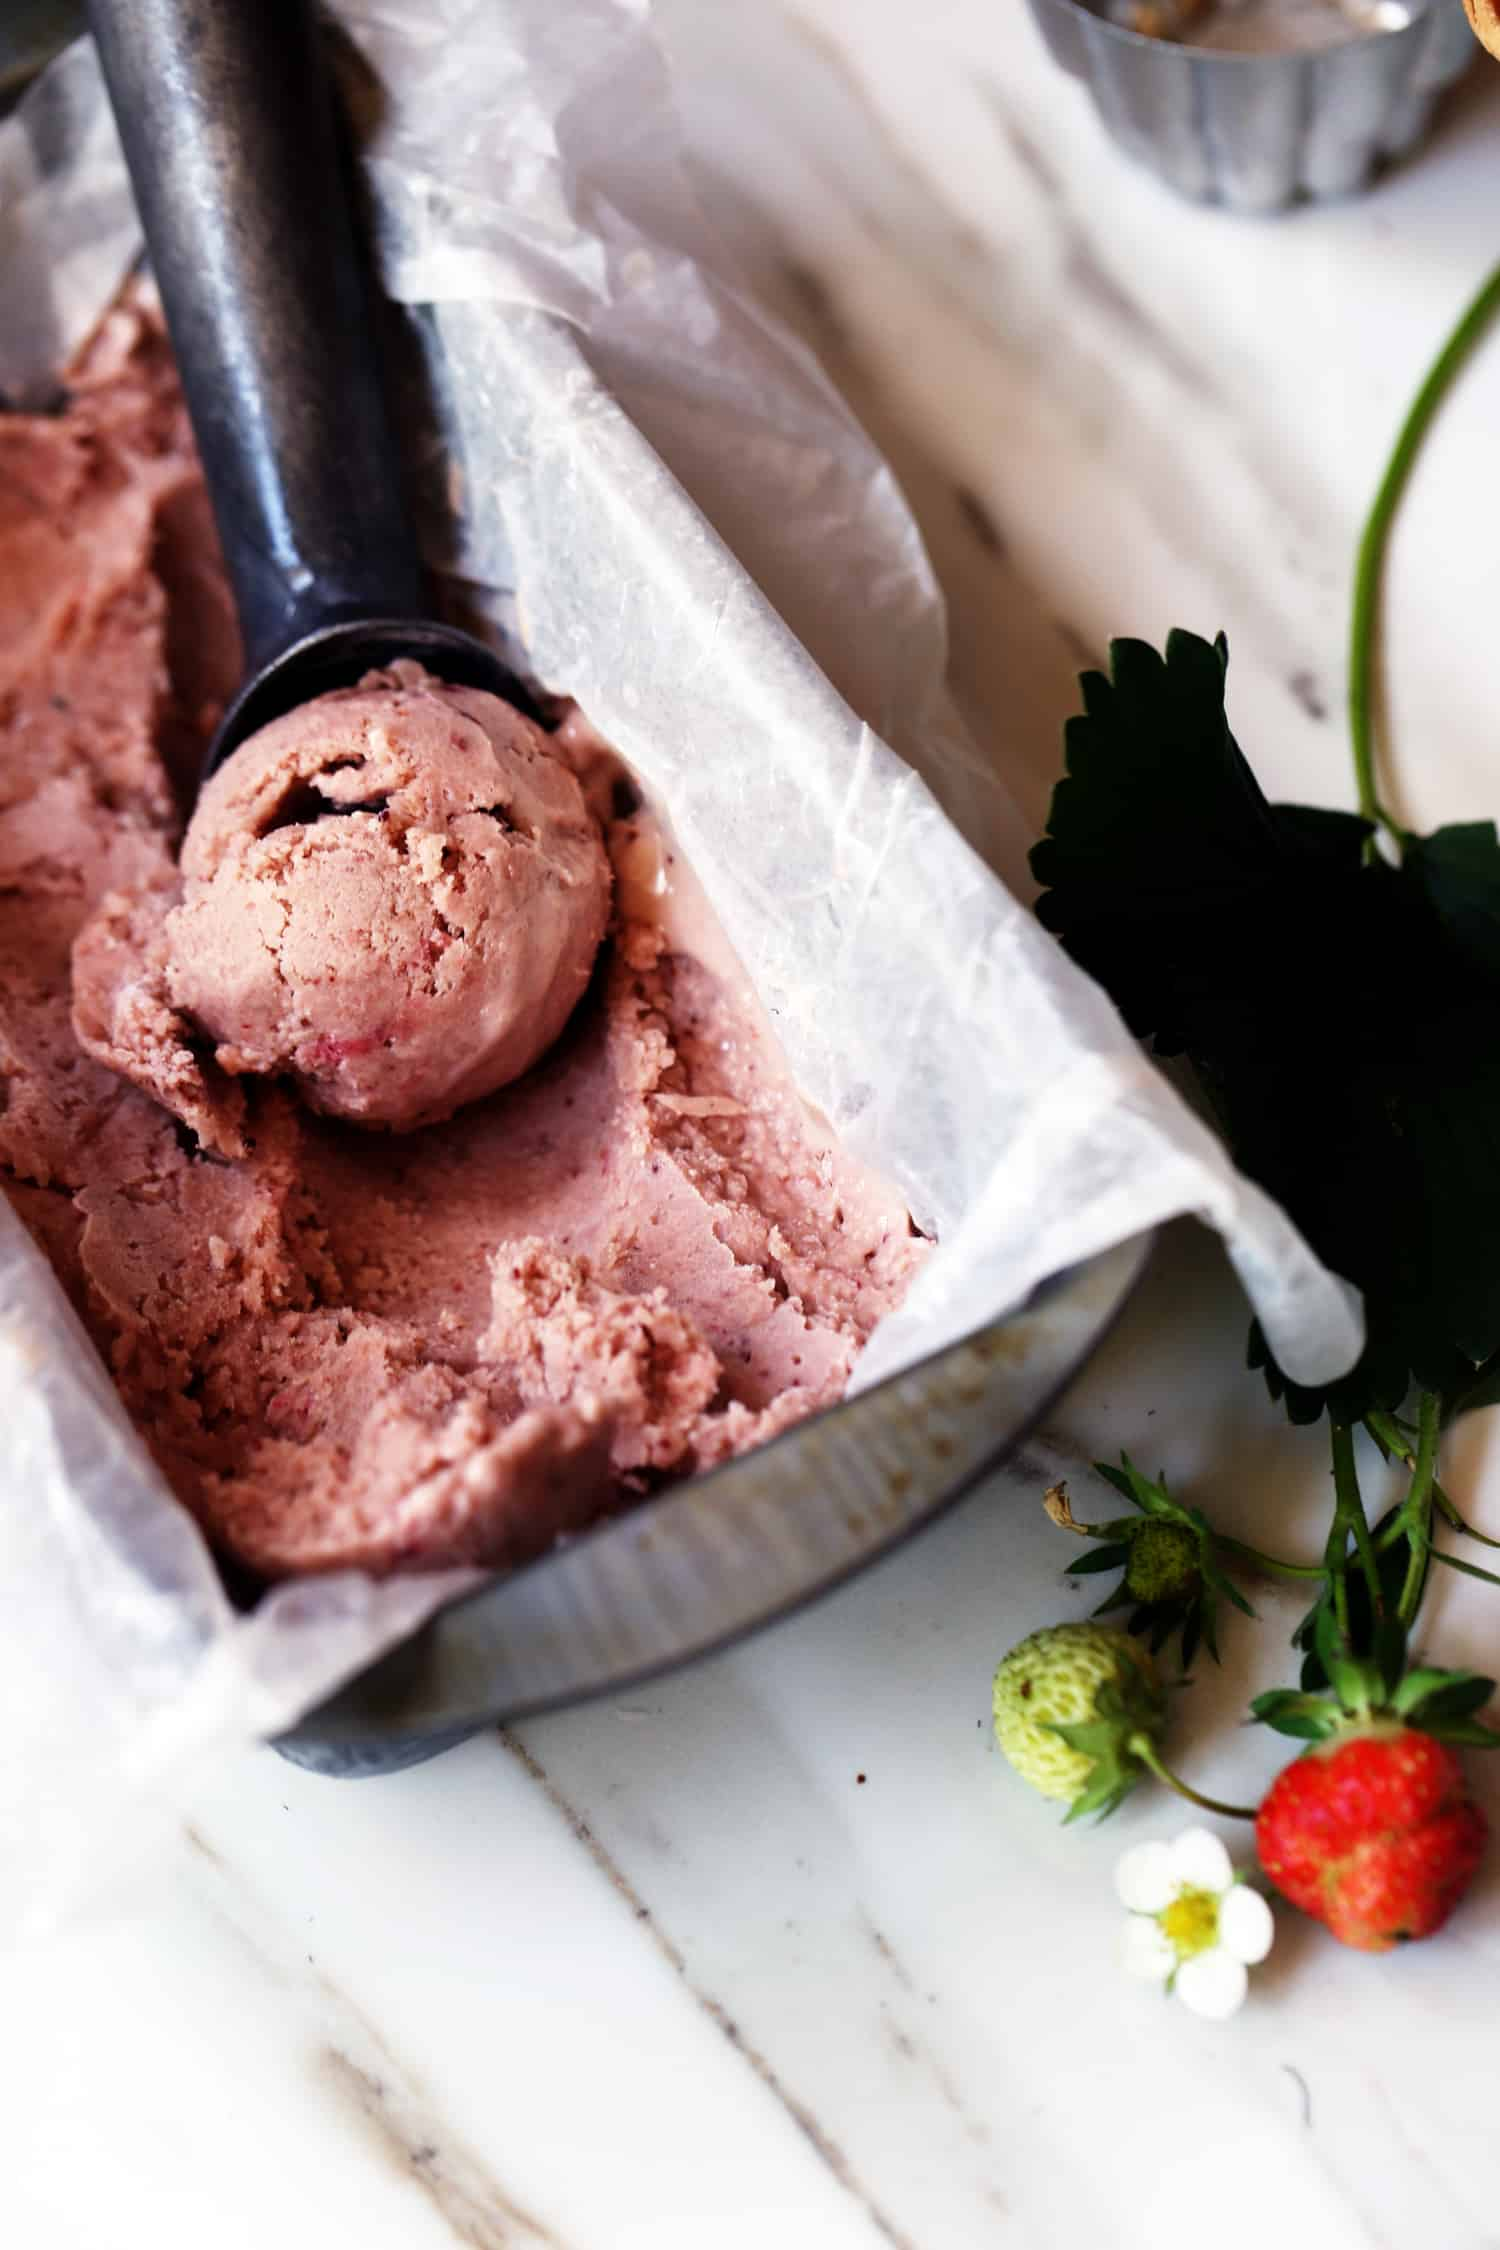 Balsamic Strawberry Almond Milk Ice Cream